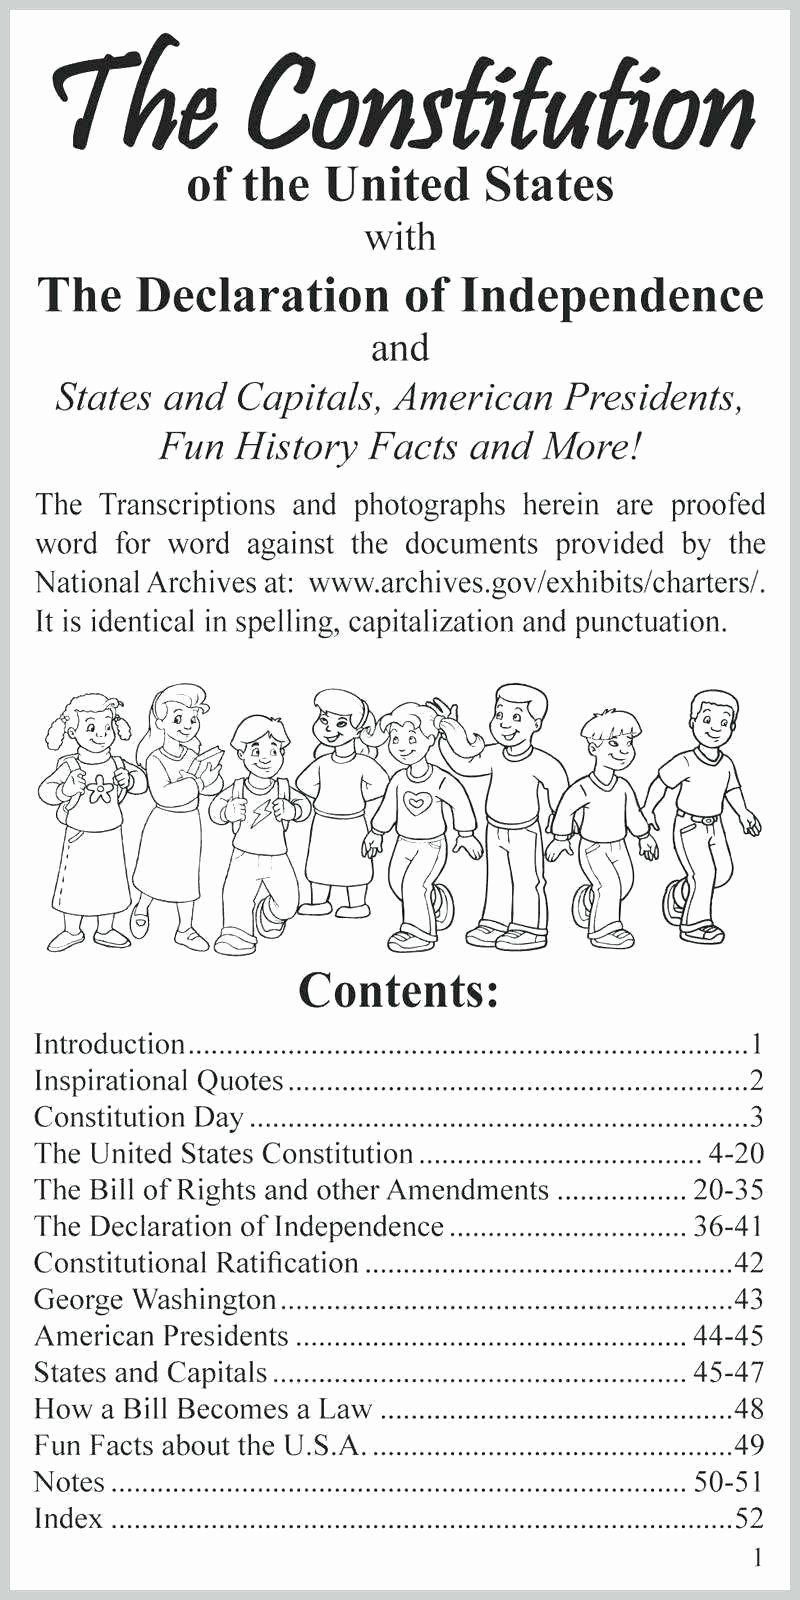 American History Coloring Book Awesome Of Bill Rights Coloring Pages Sabadaphnecottage In 2020 Coloring Books Coloring Pages Coloring Book App